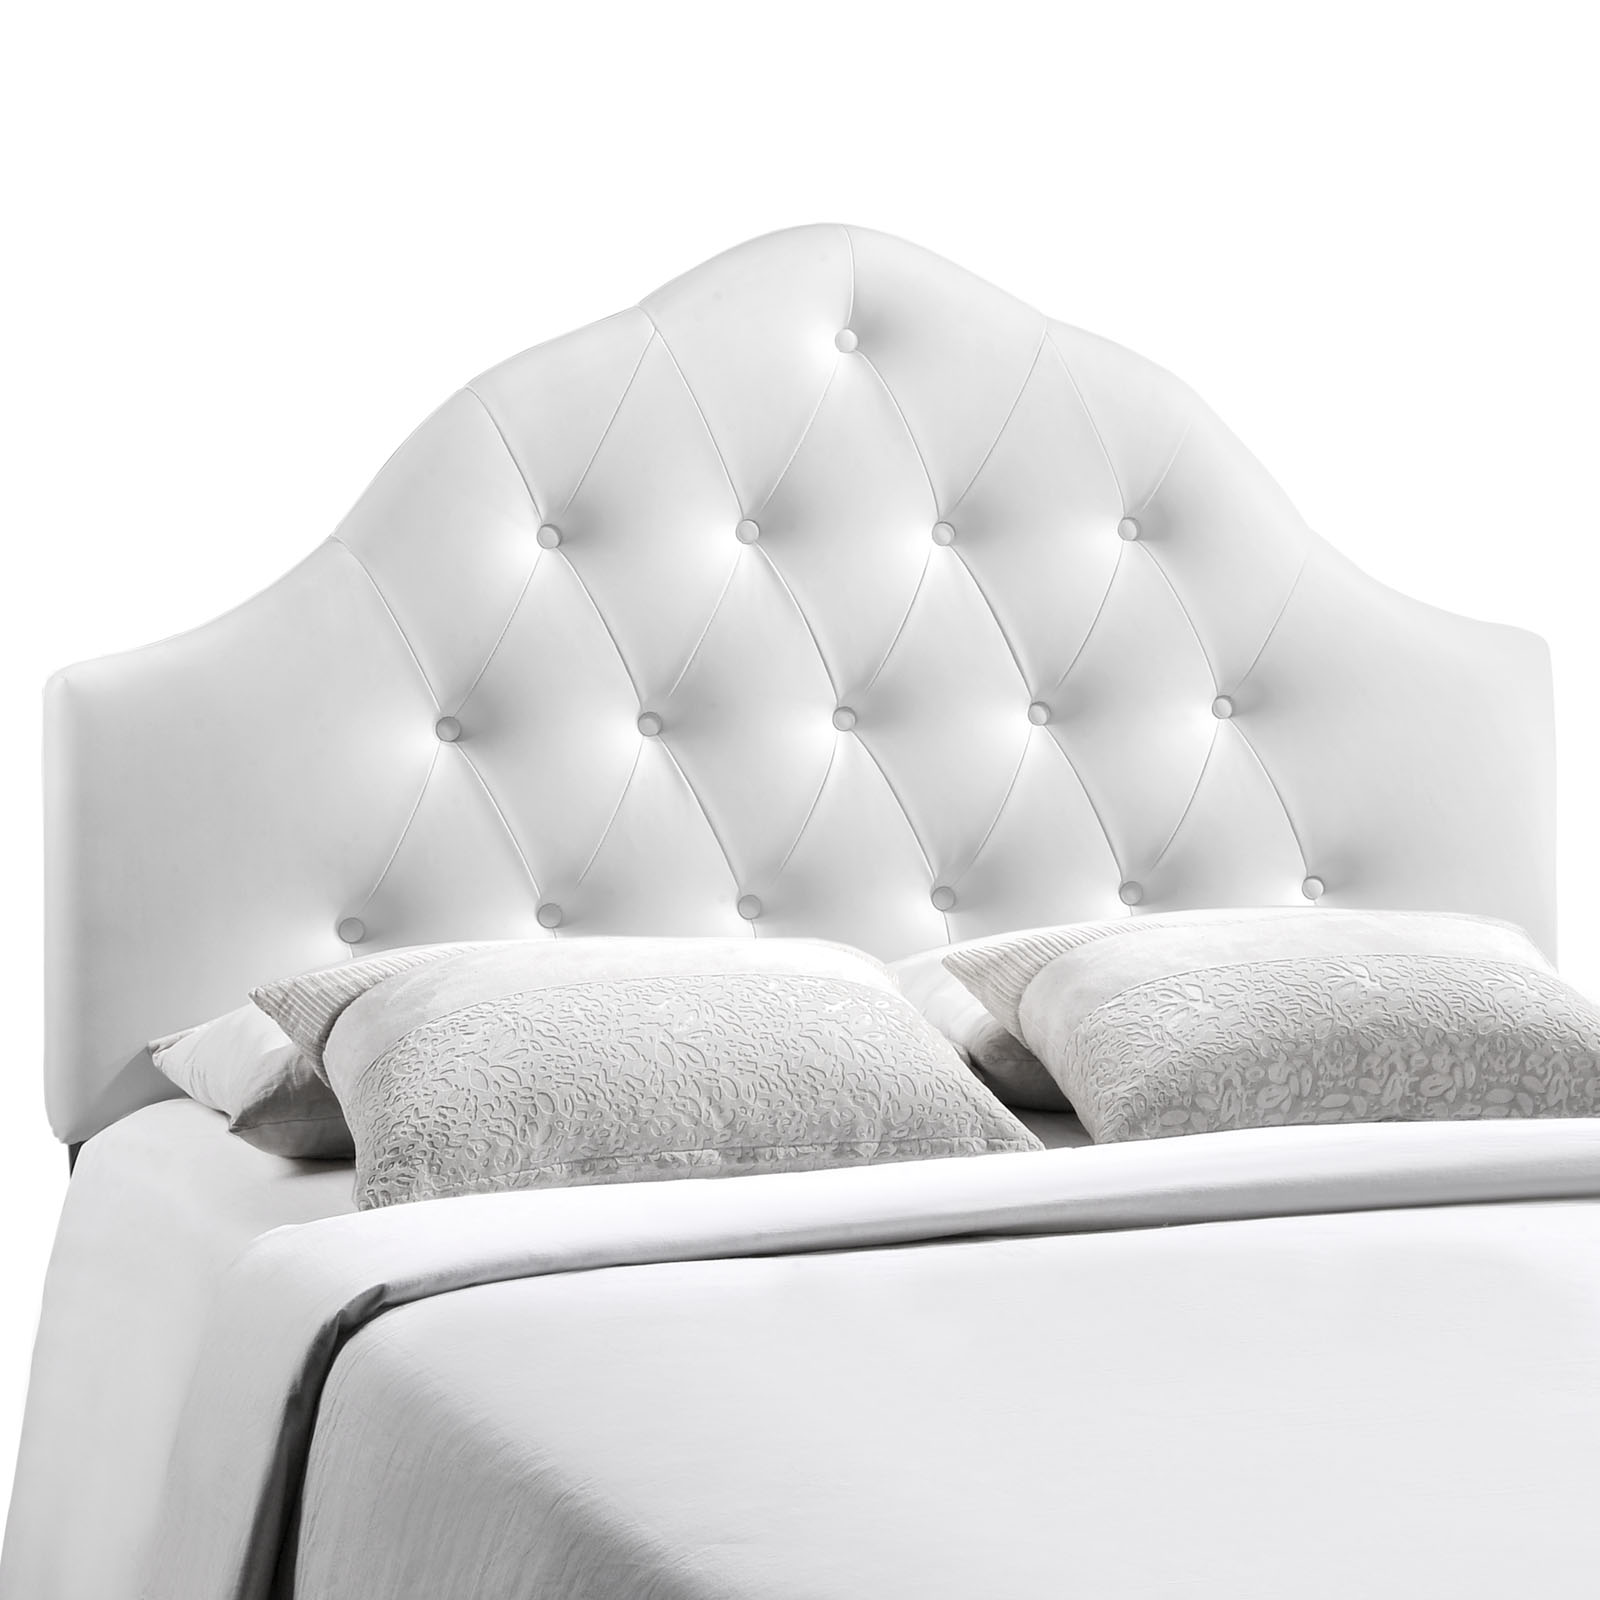 Modern Contemporary Full Size Vinyl Headboard, White Faux Leather